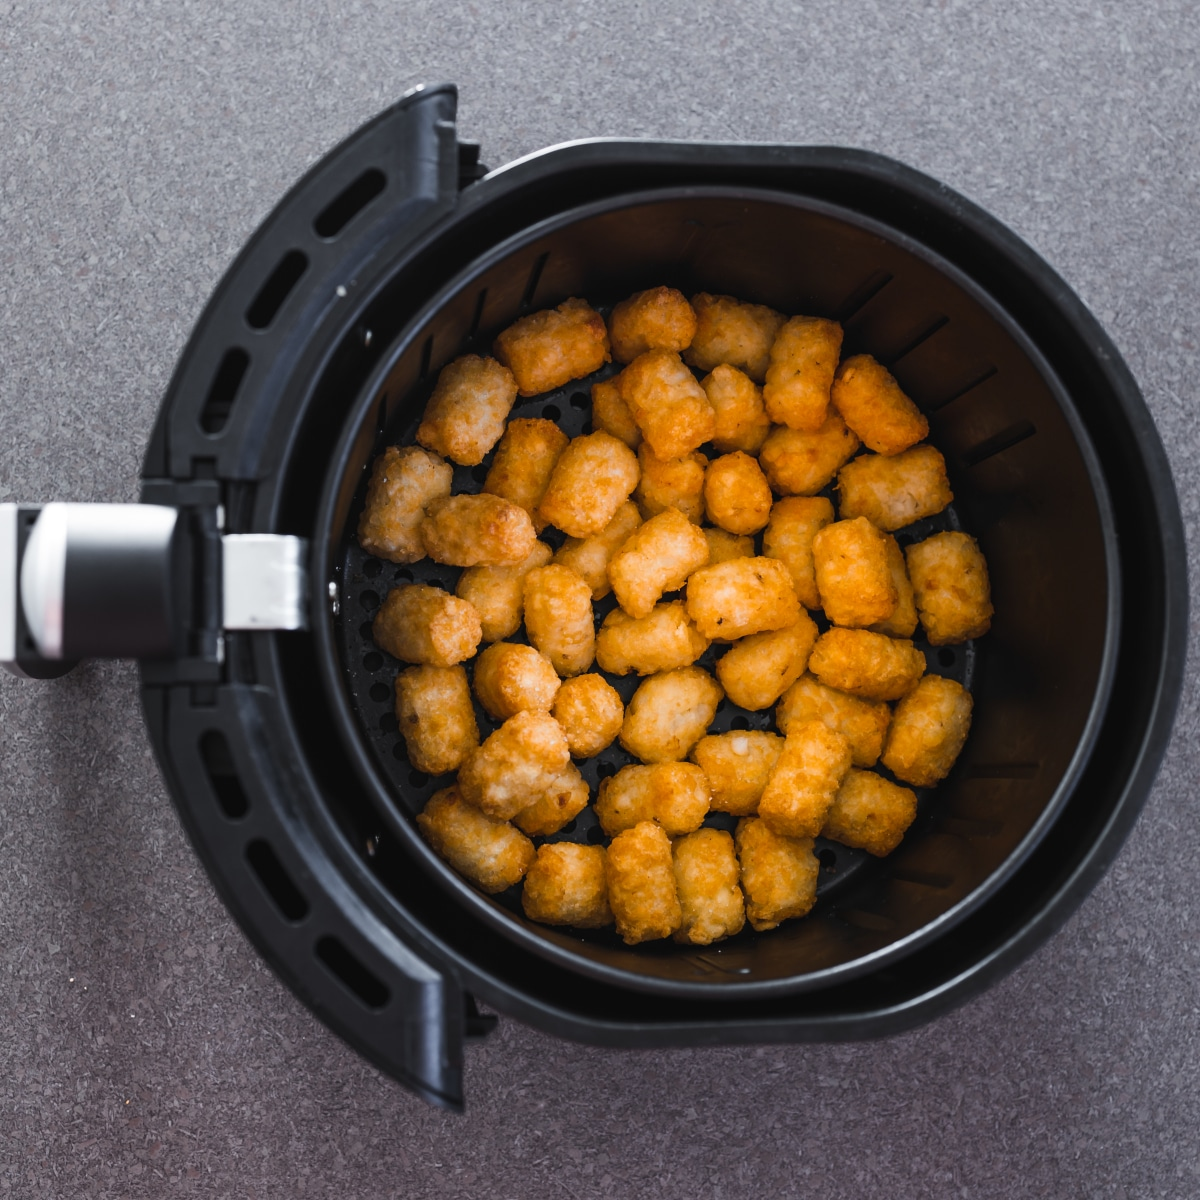 Tater tots in air fryer basket top down view.